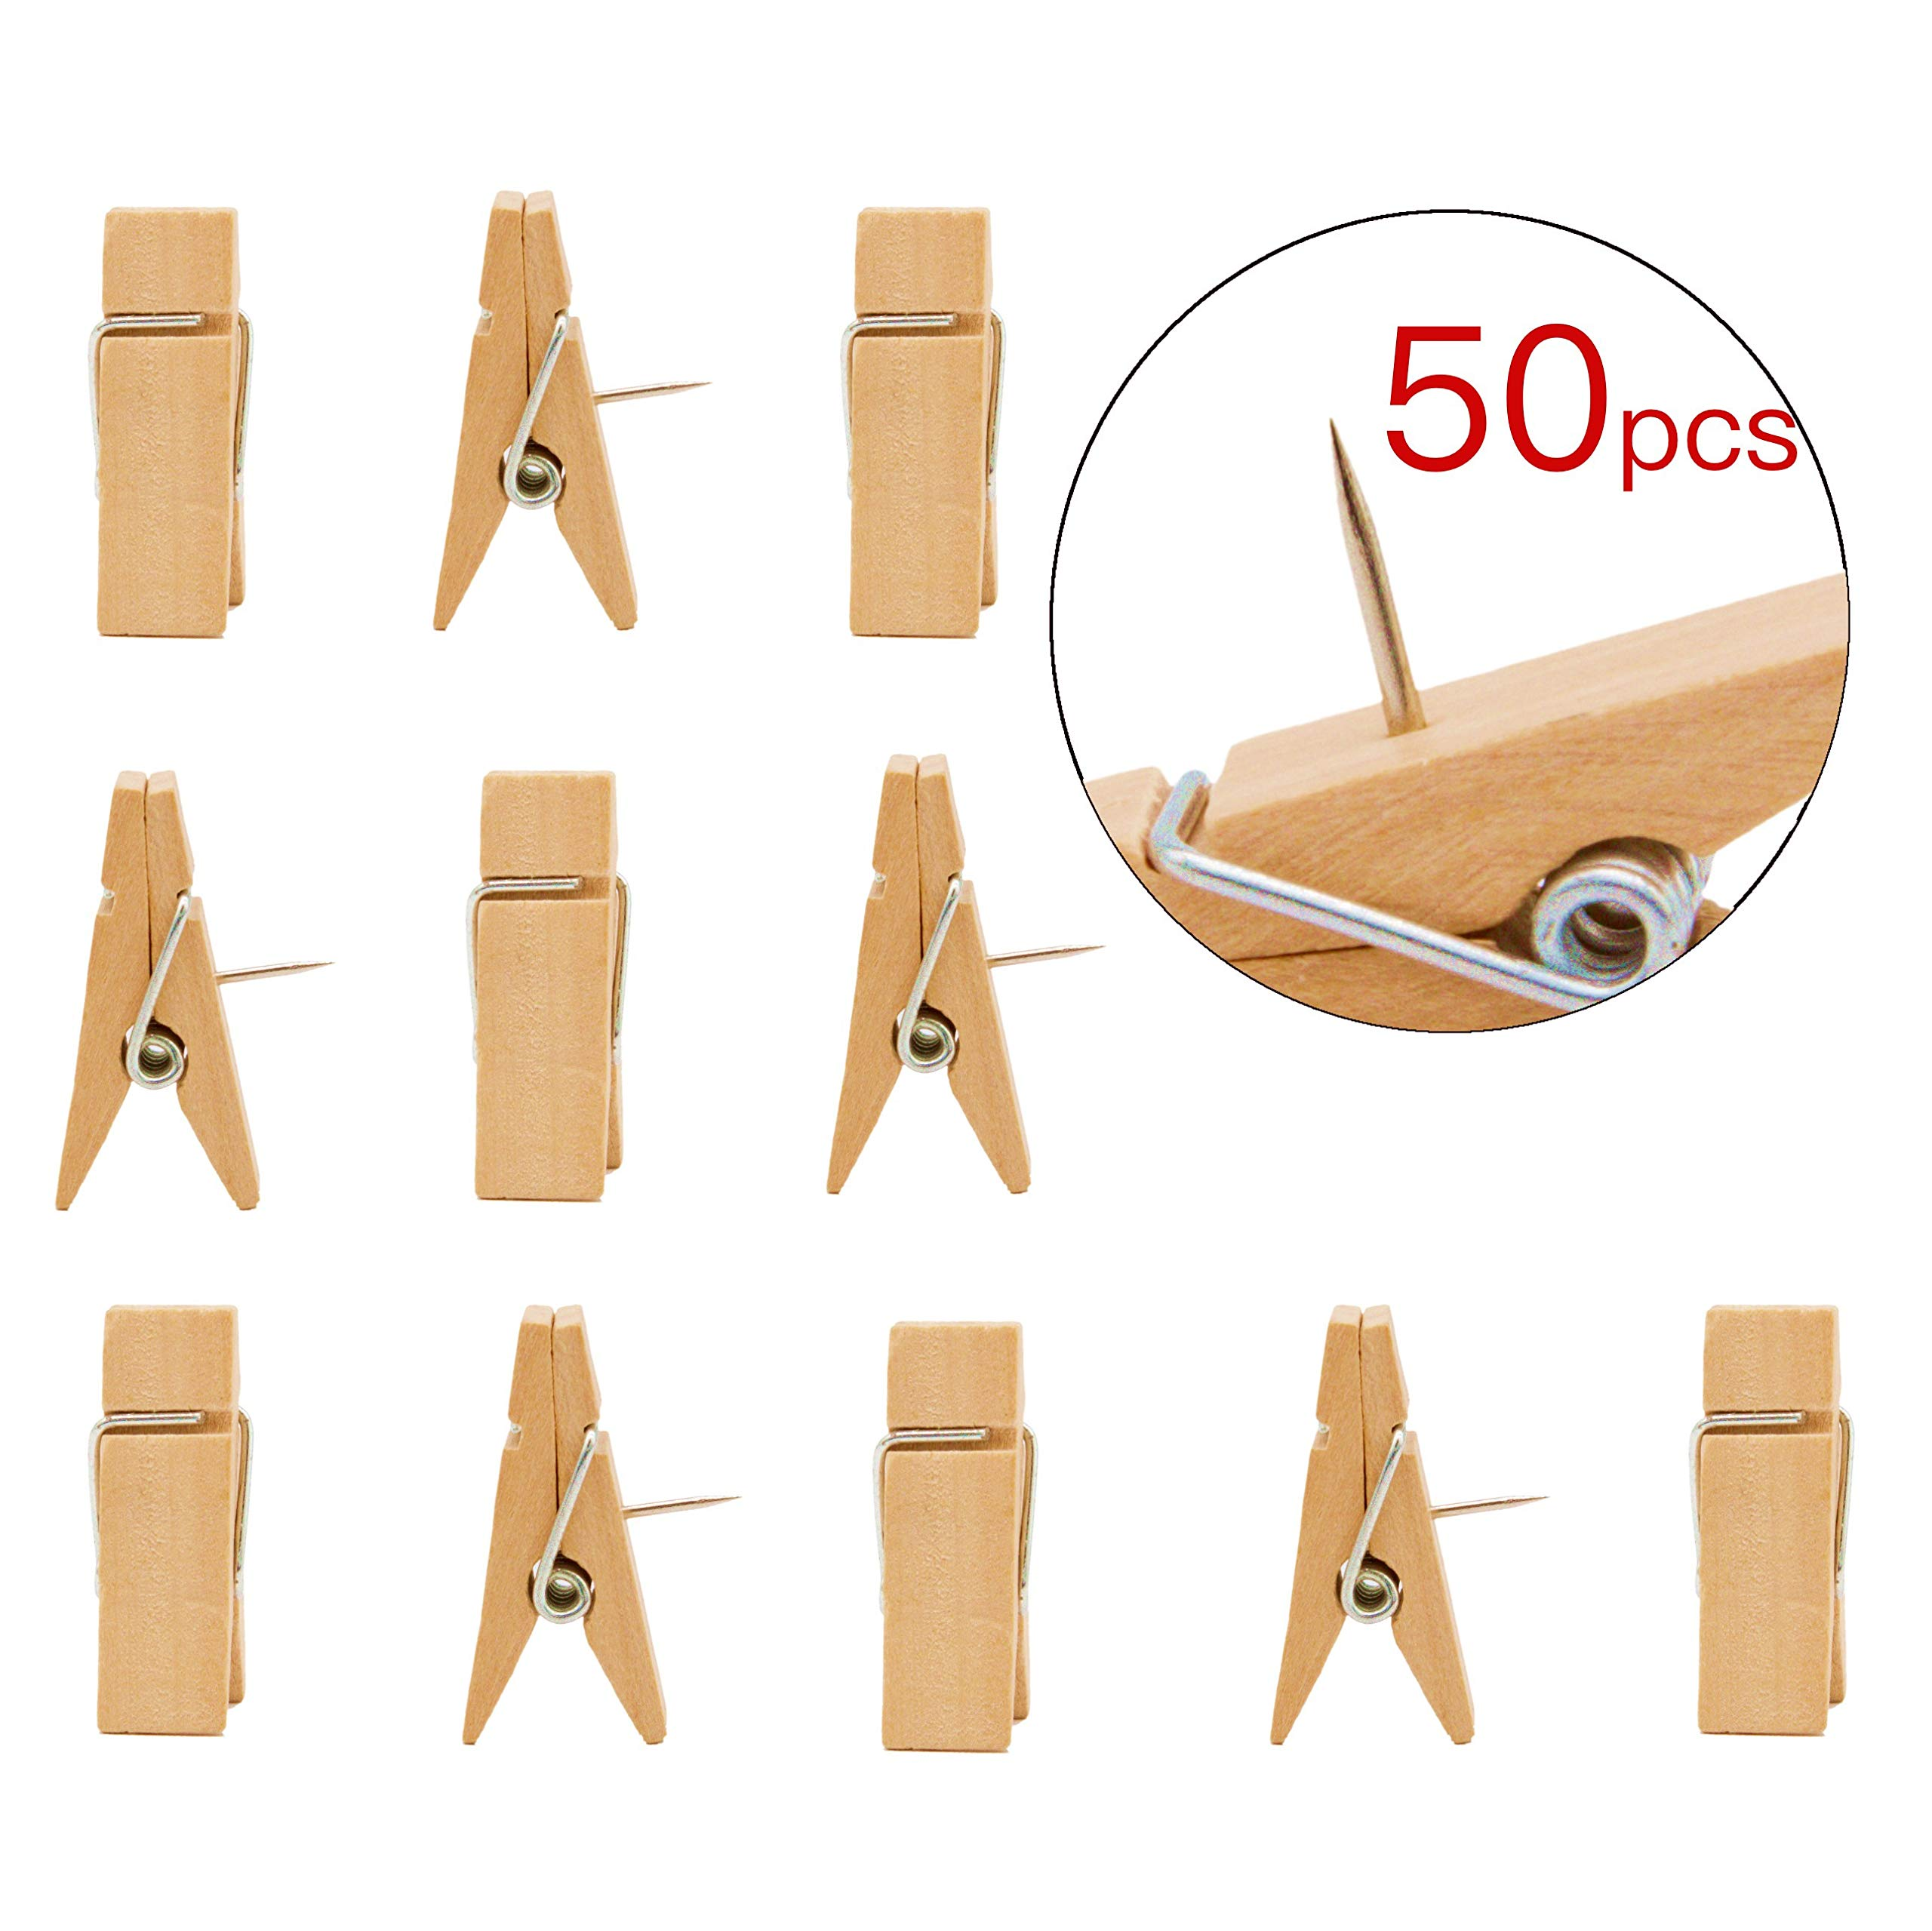 Geometric Wooden EKR VBLab 30 Count Never Falling Off Wooden Push Pins